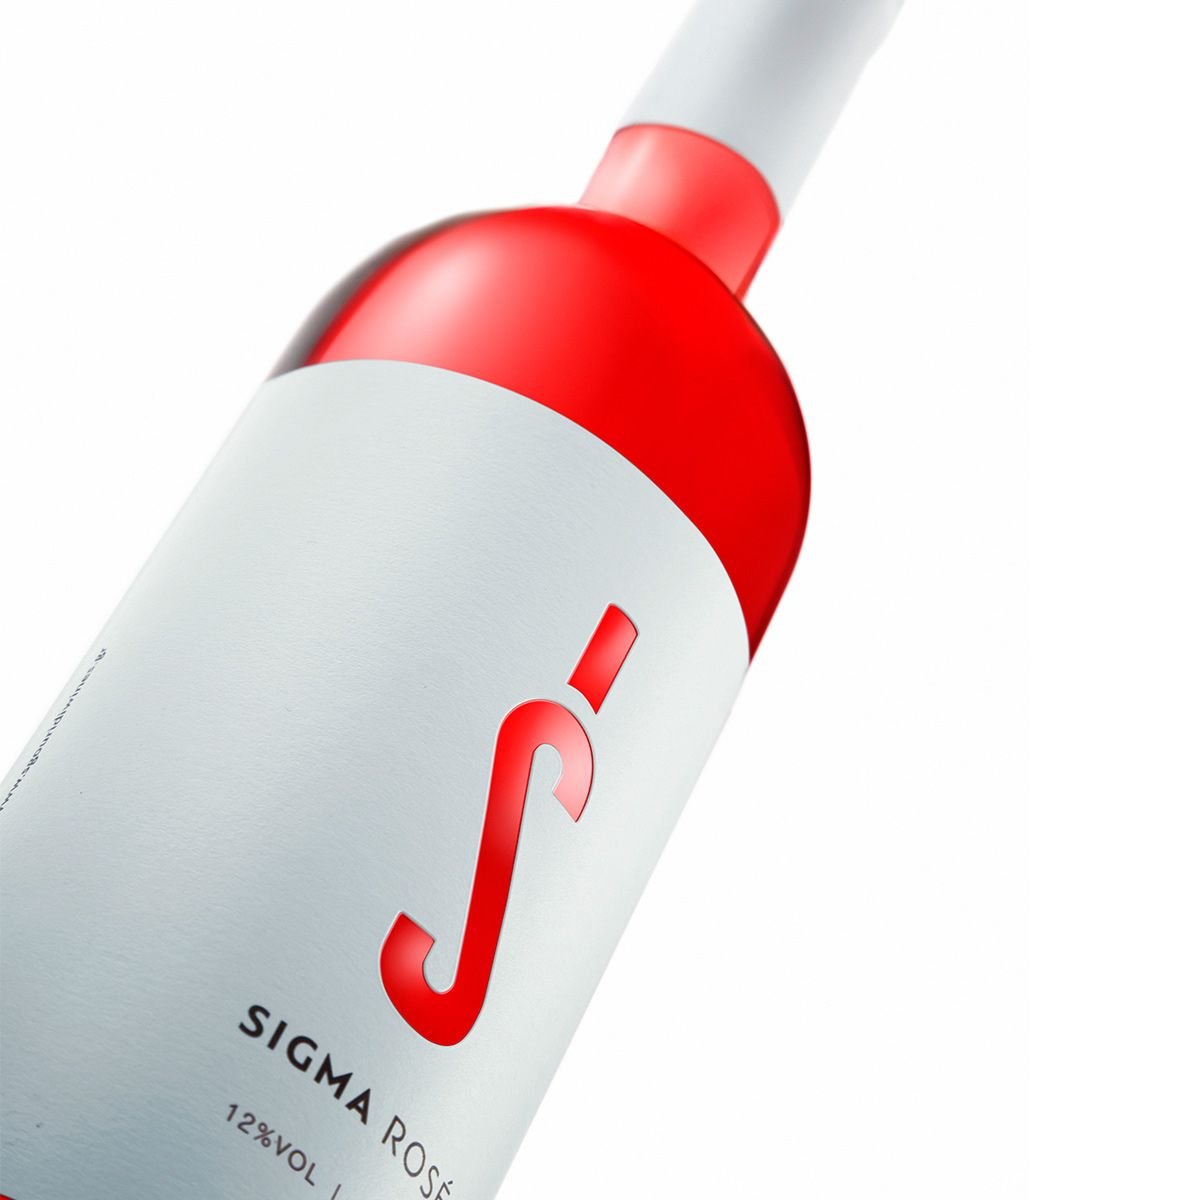 Sigma Wines On Behance Wine Bottle Design Bottle Design Packaging Wine Packaging